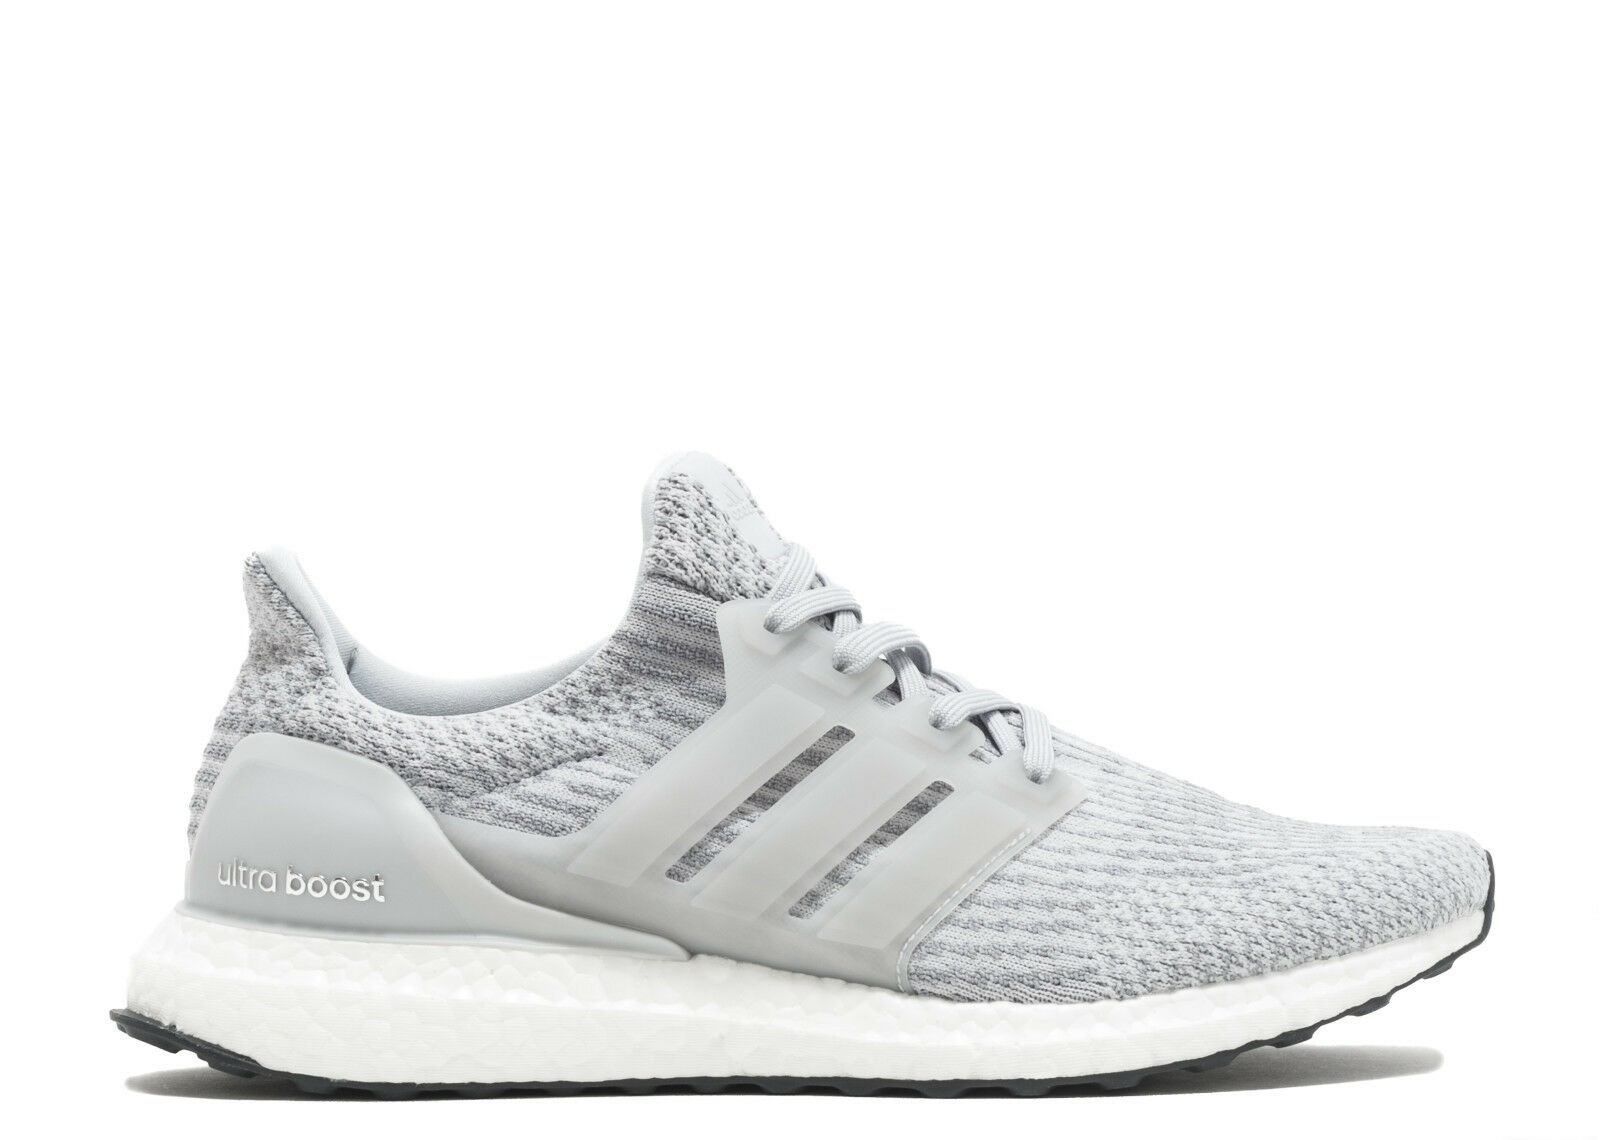 NEW NEW ADIDAS ULTRA BOOST GREY WHITE 2016 NEW NEW SZ 12 BB6059 UB 174a65